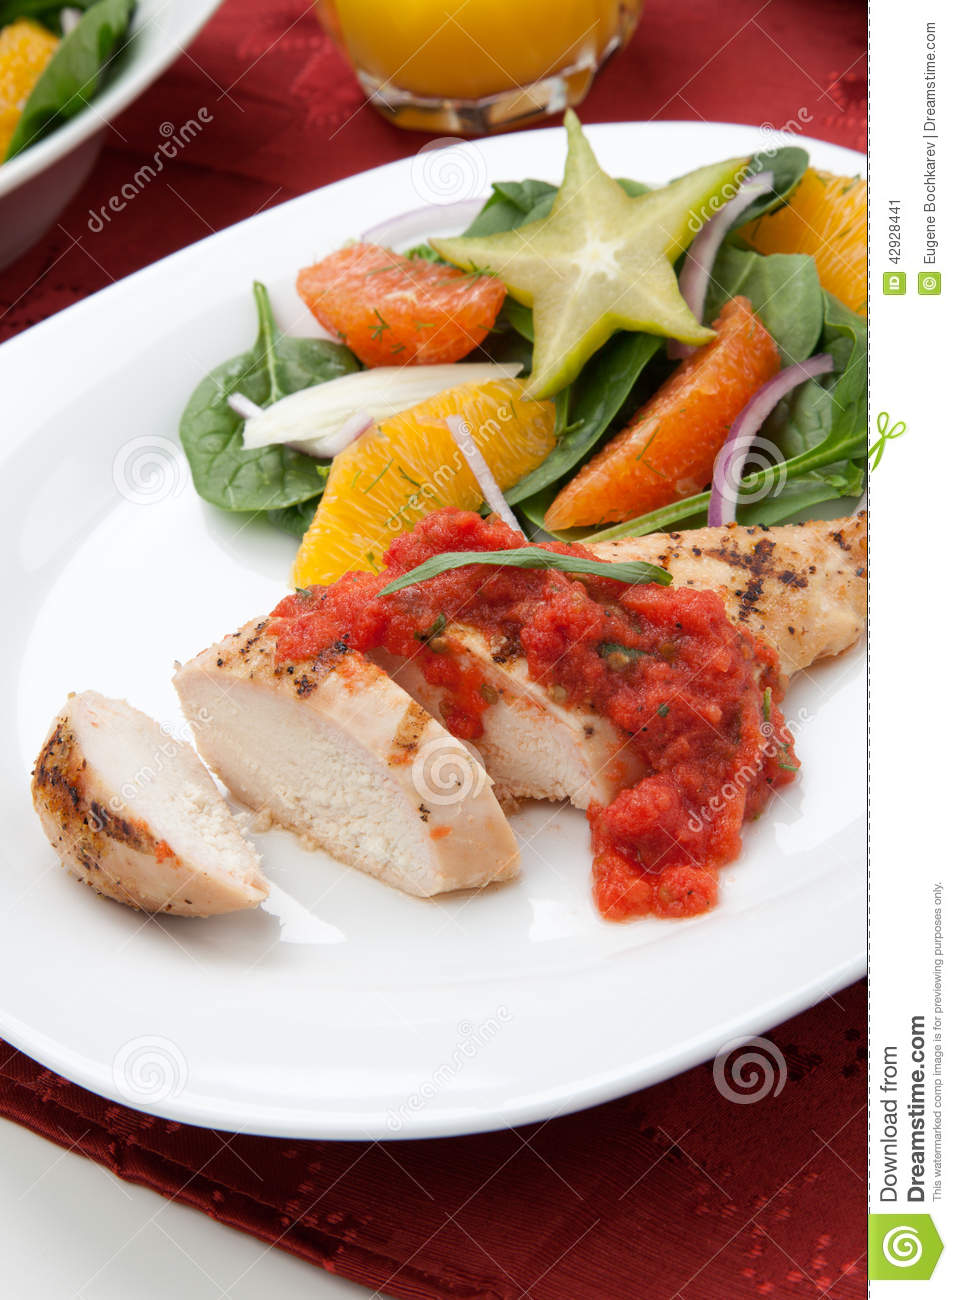 Grilled Chicken With Tomato Tarragon Sauce Recipe — Dishmaps